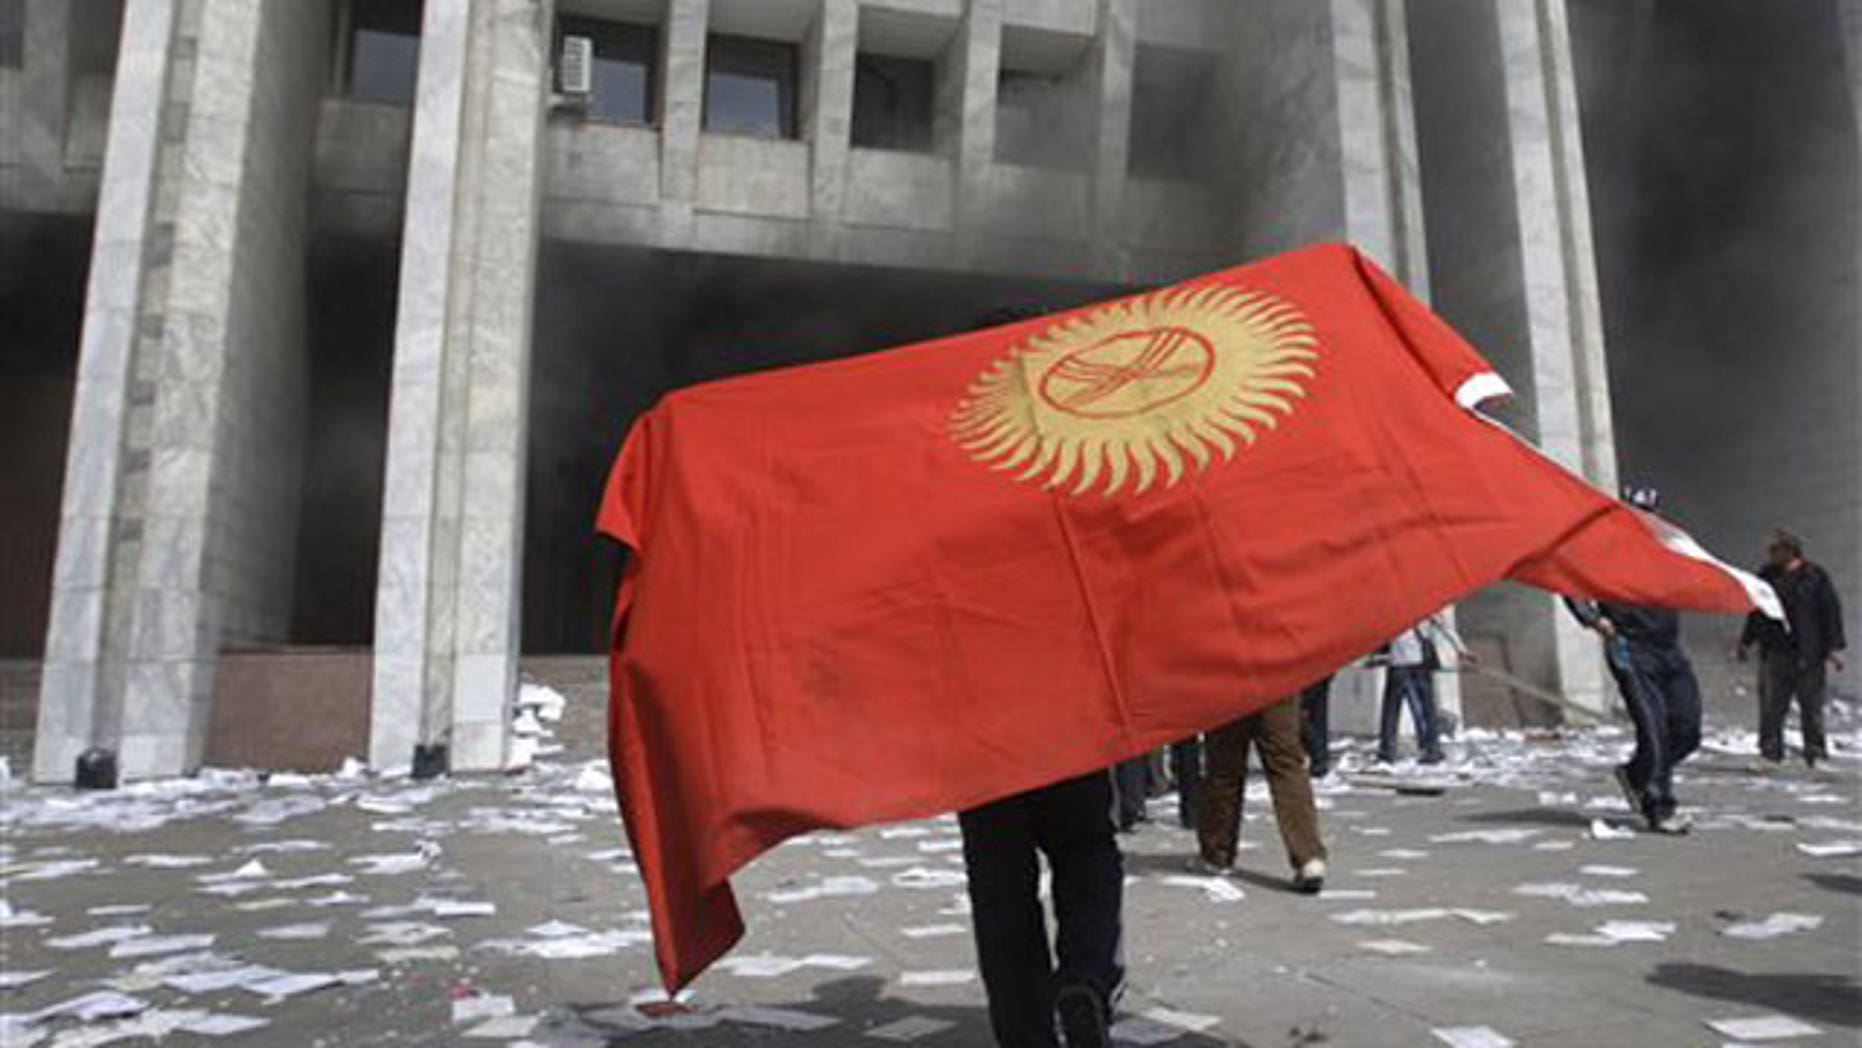 April 8: A protester covered by Kyrgyz national flag walks in front of Kyrgyz government headquarters on the central square in Bishkek.